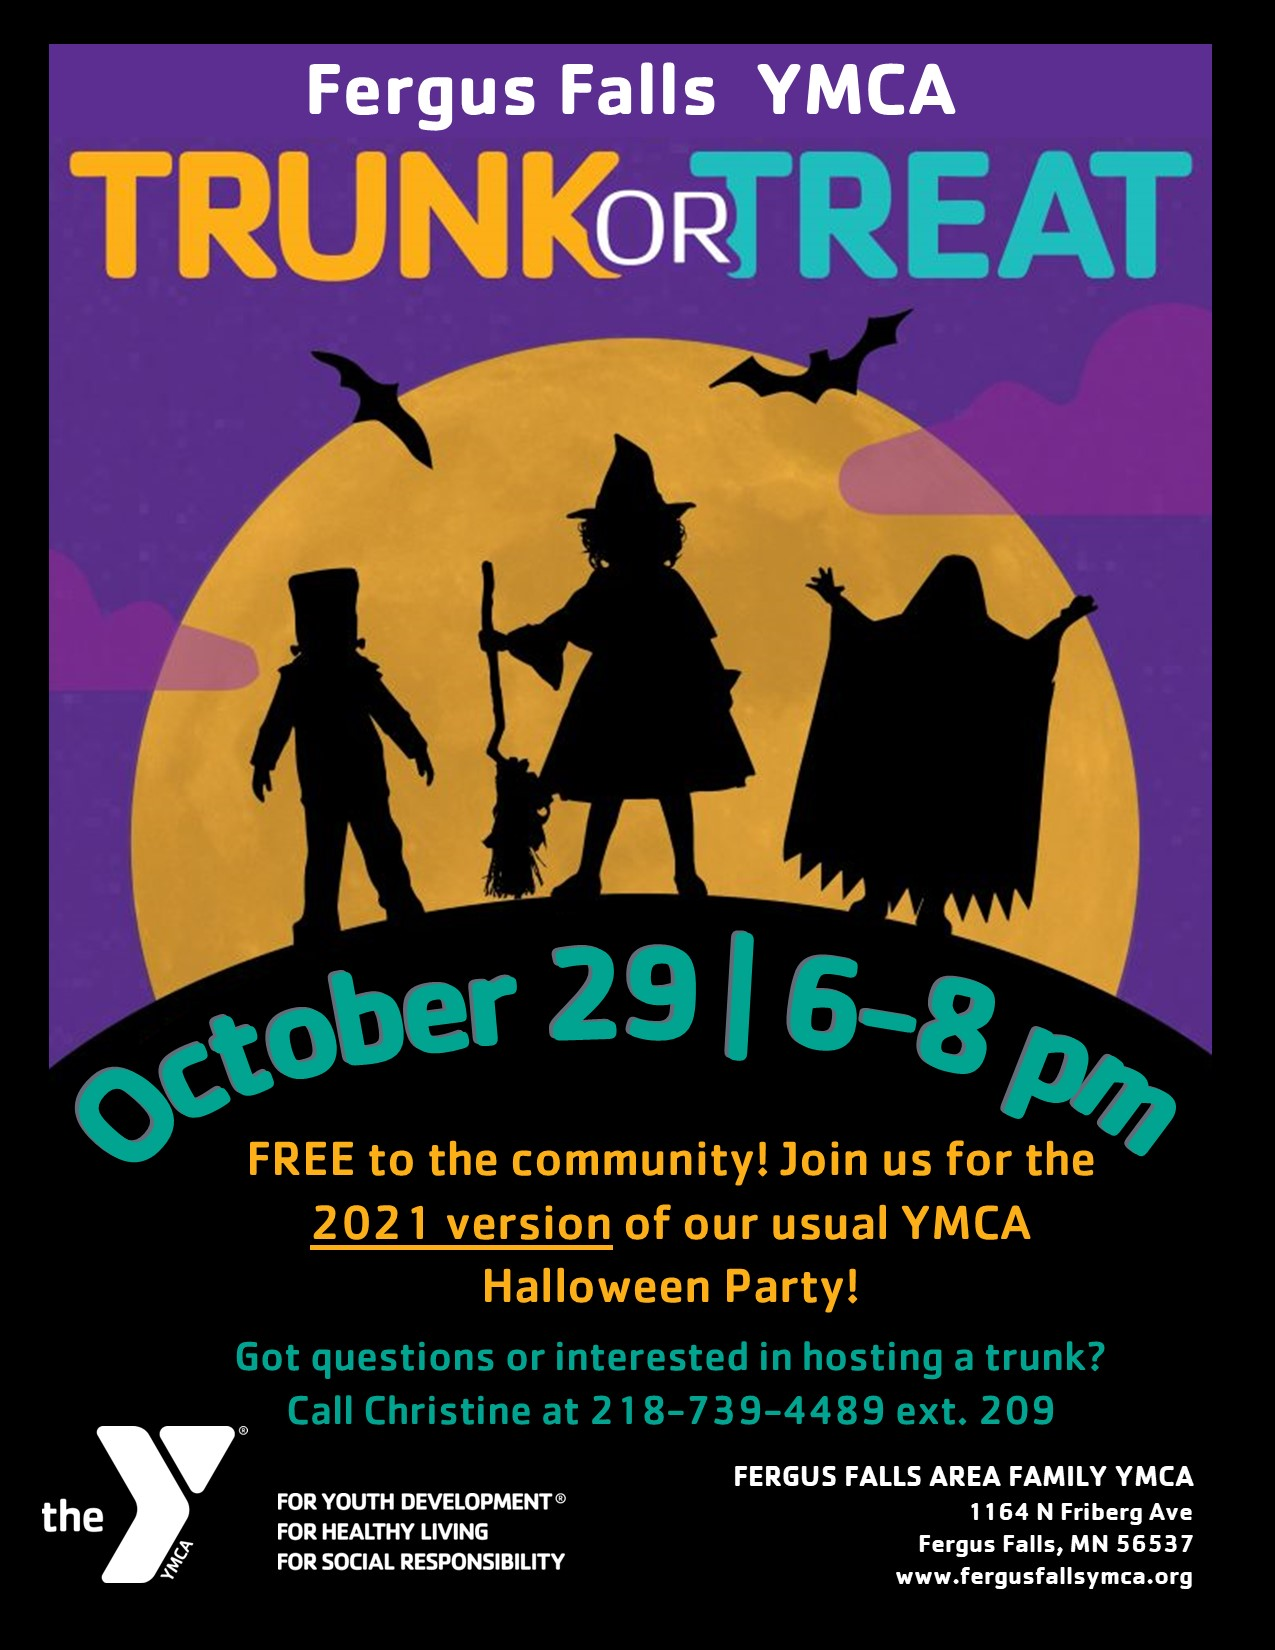 Trunk or Treat at the YMCA--October 29